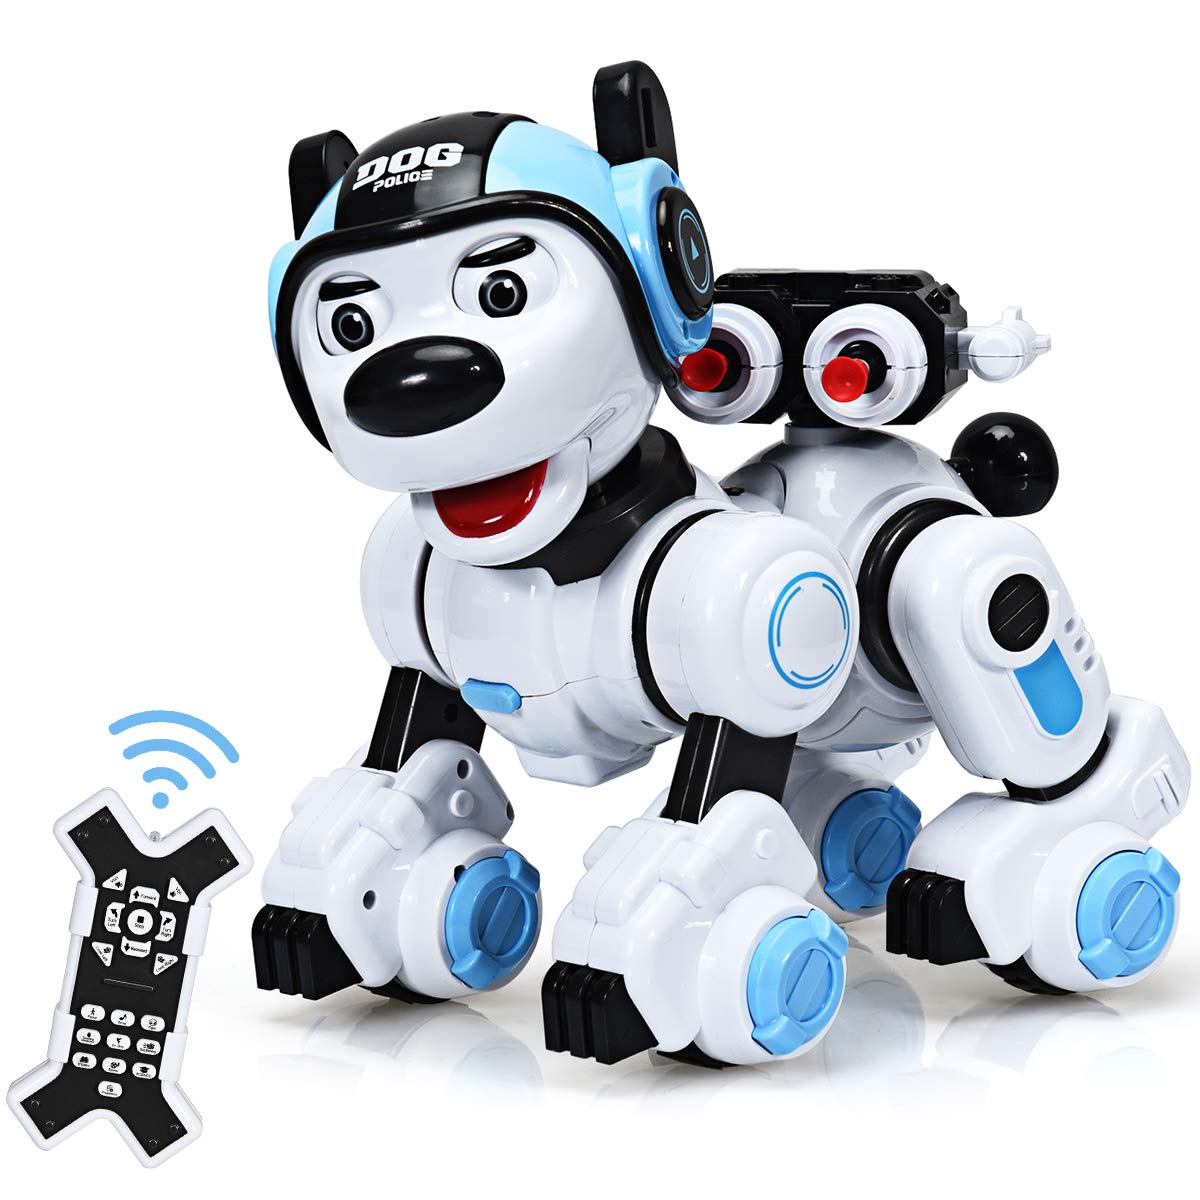 Costzon Remote Control Robotic Dog, Wireless Programmable Interactive Robot Puppy for Kids, Educational Electronic Pet Toys w/Singing, Dancing, Blinking, Shooting Function, Gift for Children (Blue) - wiihuu